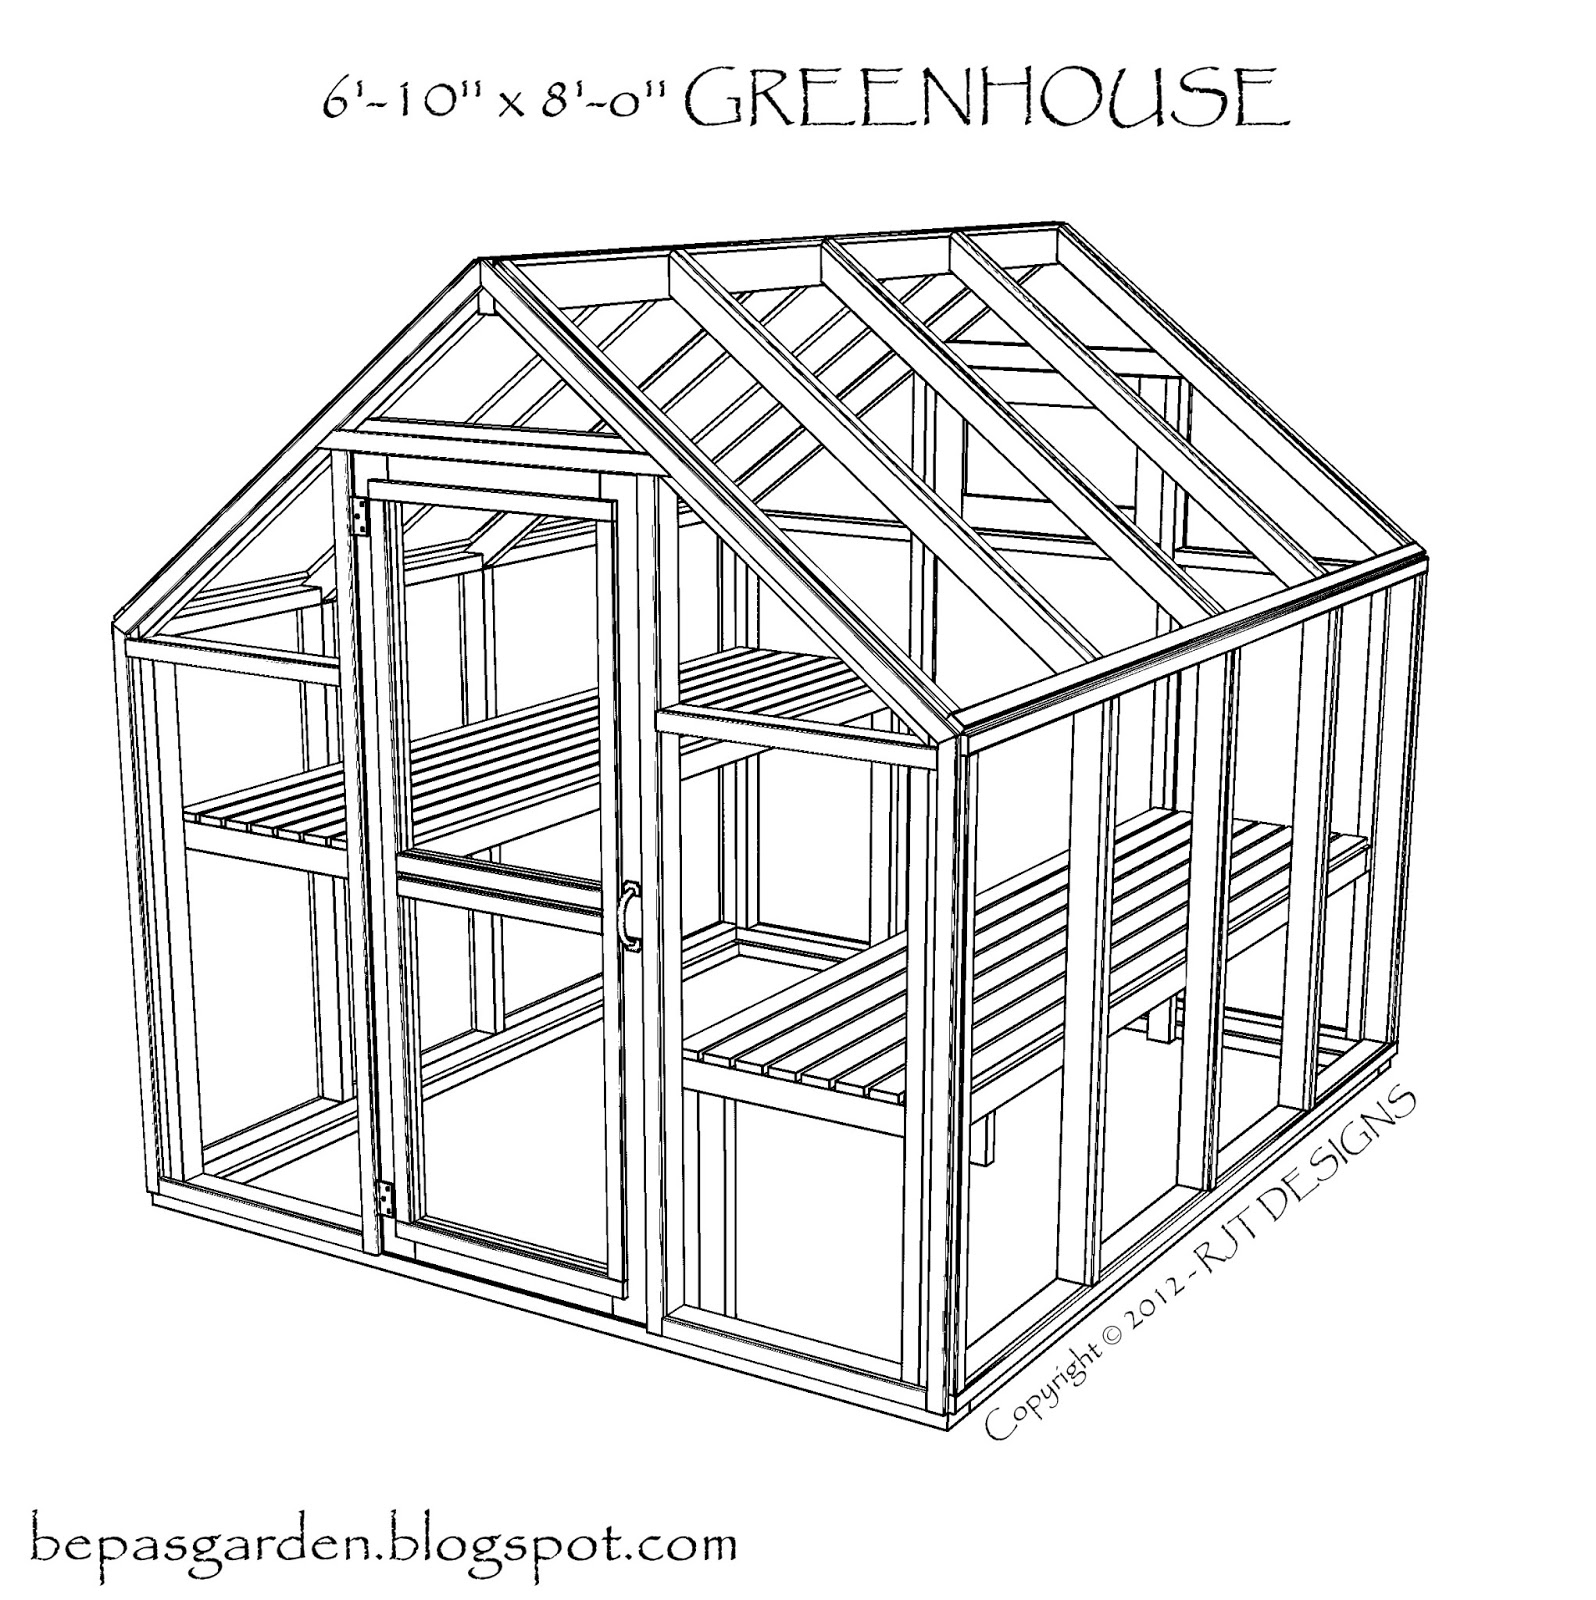 Bepa 39 s garden pdf version of greenhouse plans now available for Greenhouse floor plans